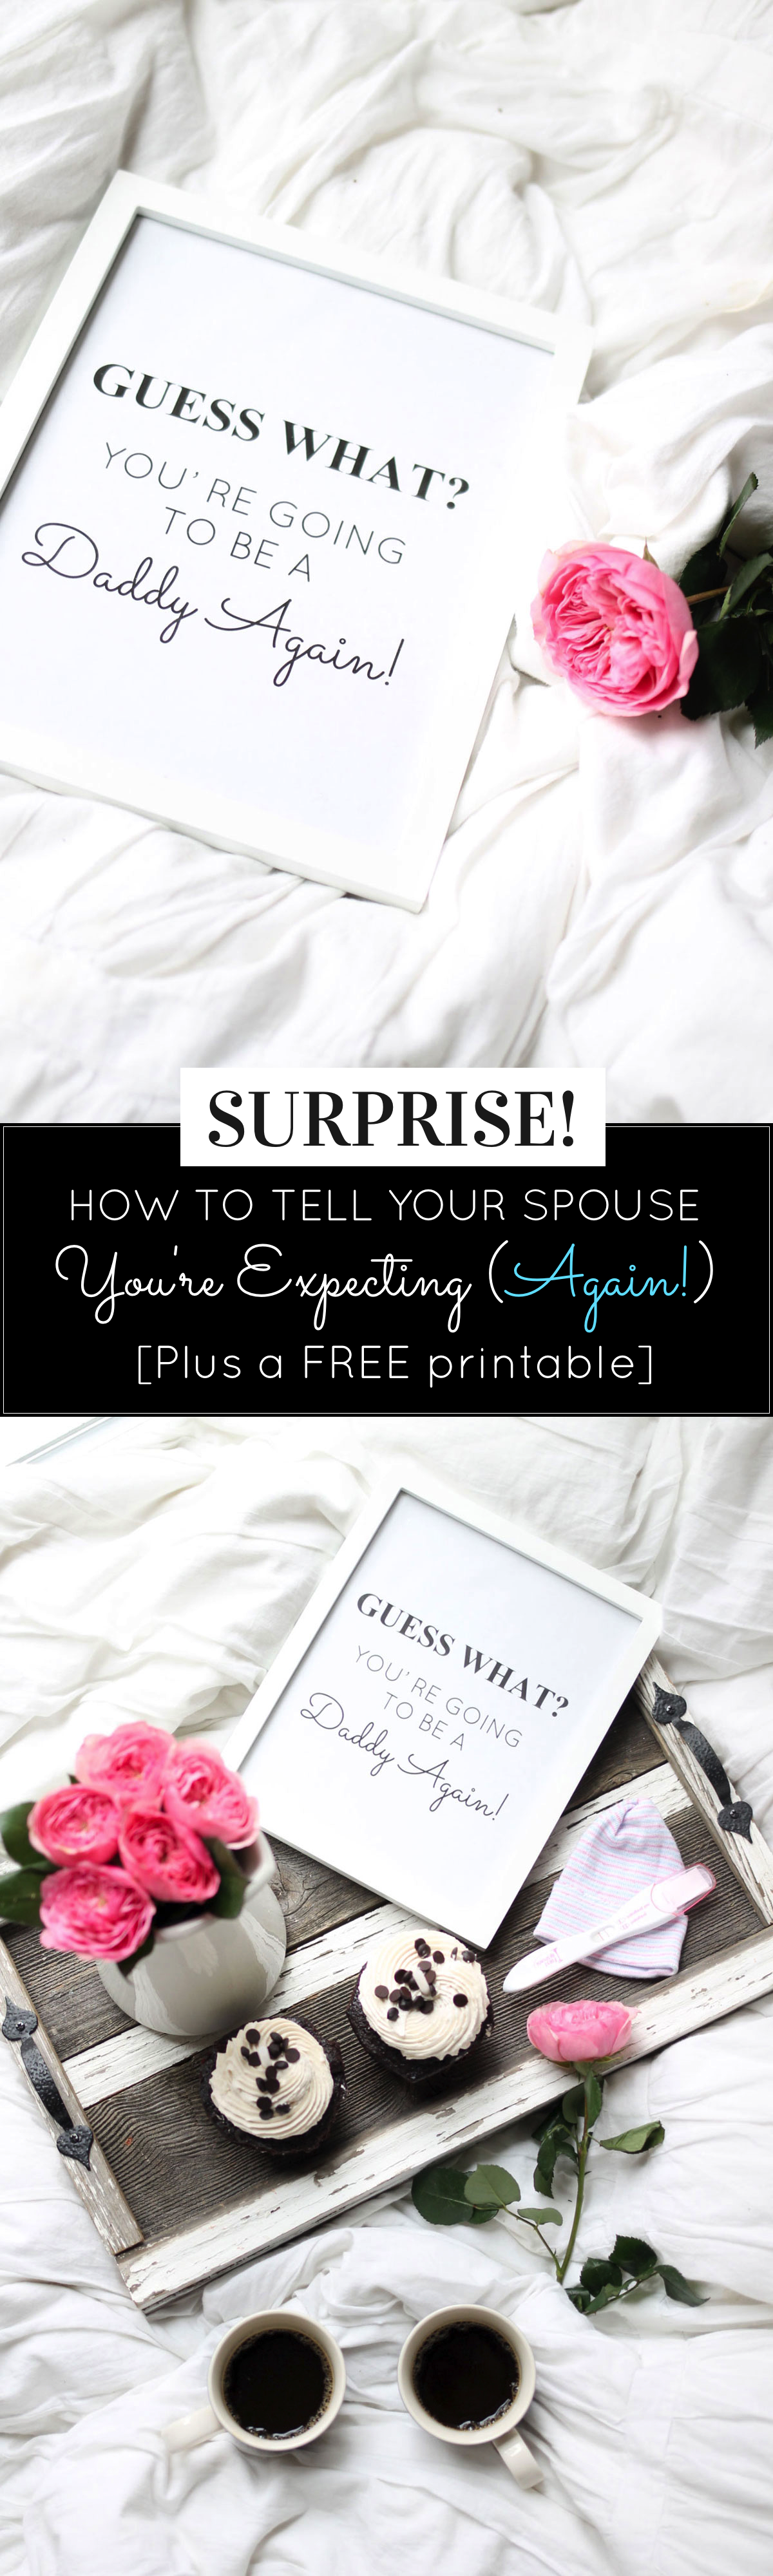 How to Tell Your Partner You're Pregnant Again, plus a FREE printable, by lifestyle blogger Lexi of Glitter, Inc. | glitterinc.com | @glitterinc